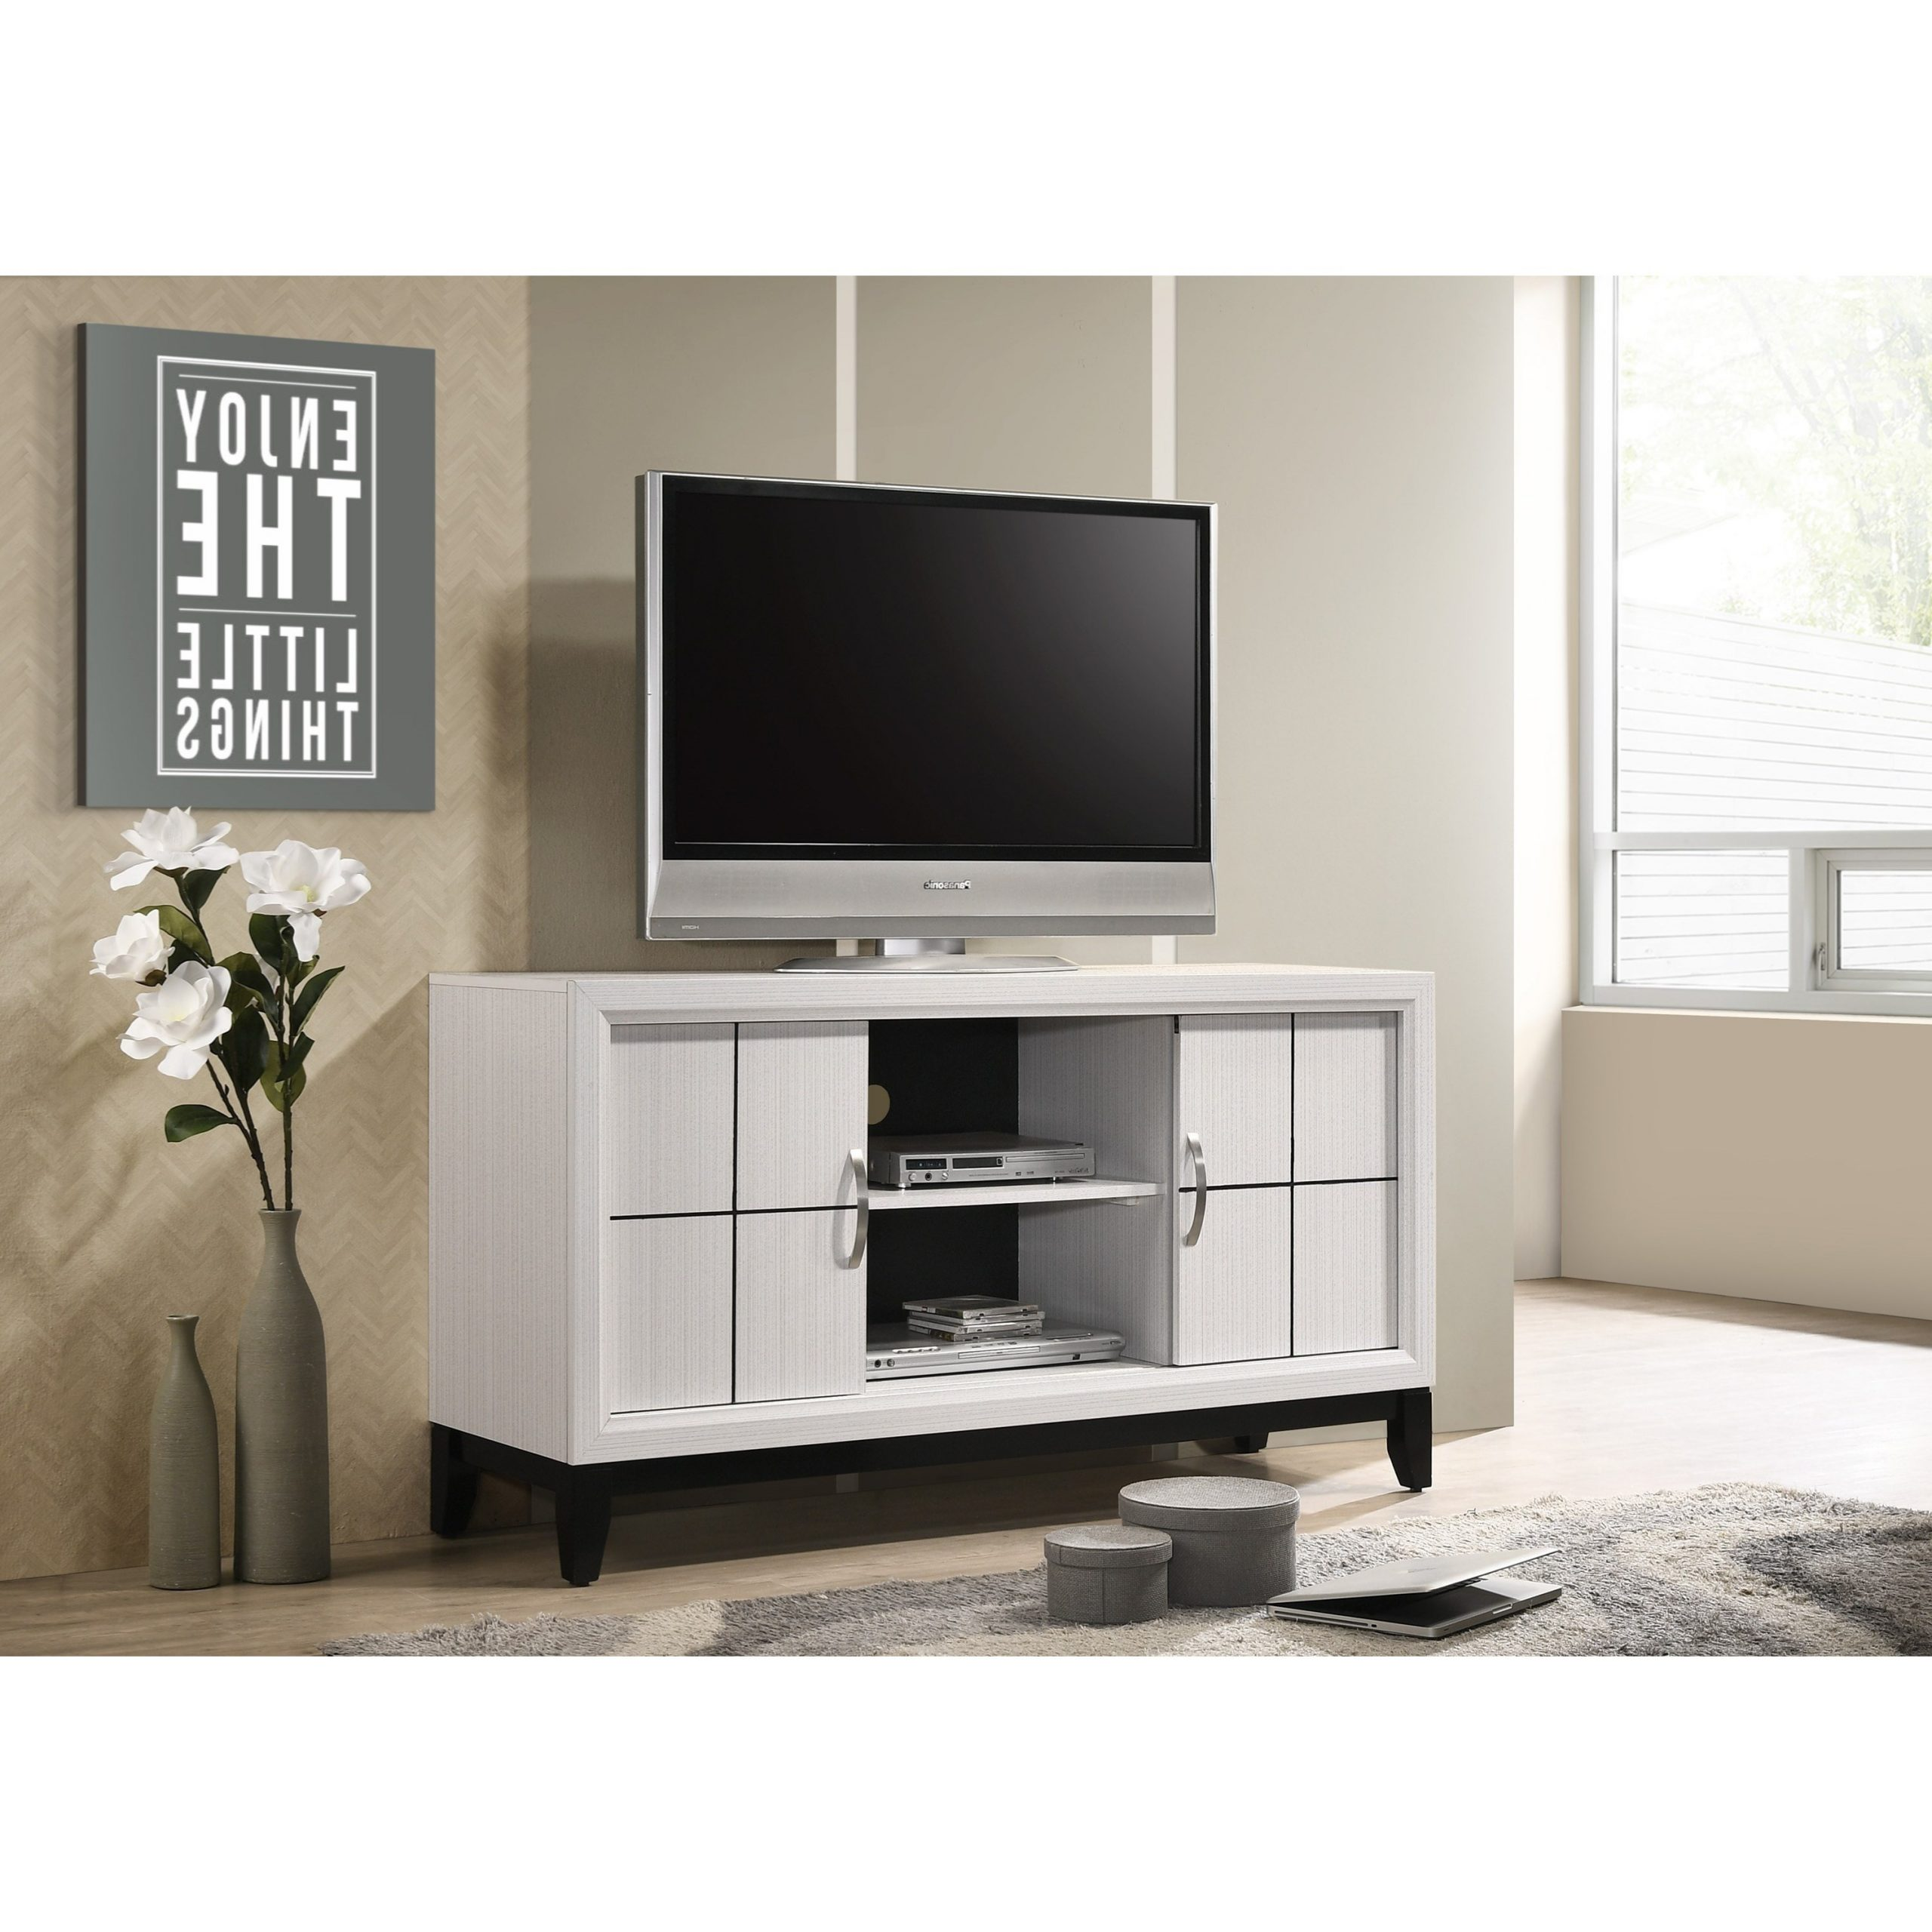 Crown Mark Akerson Contemporary Tv Stand With Wire Throughout Tv Stands With Cable Management (View 8 of 20)